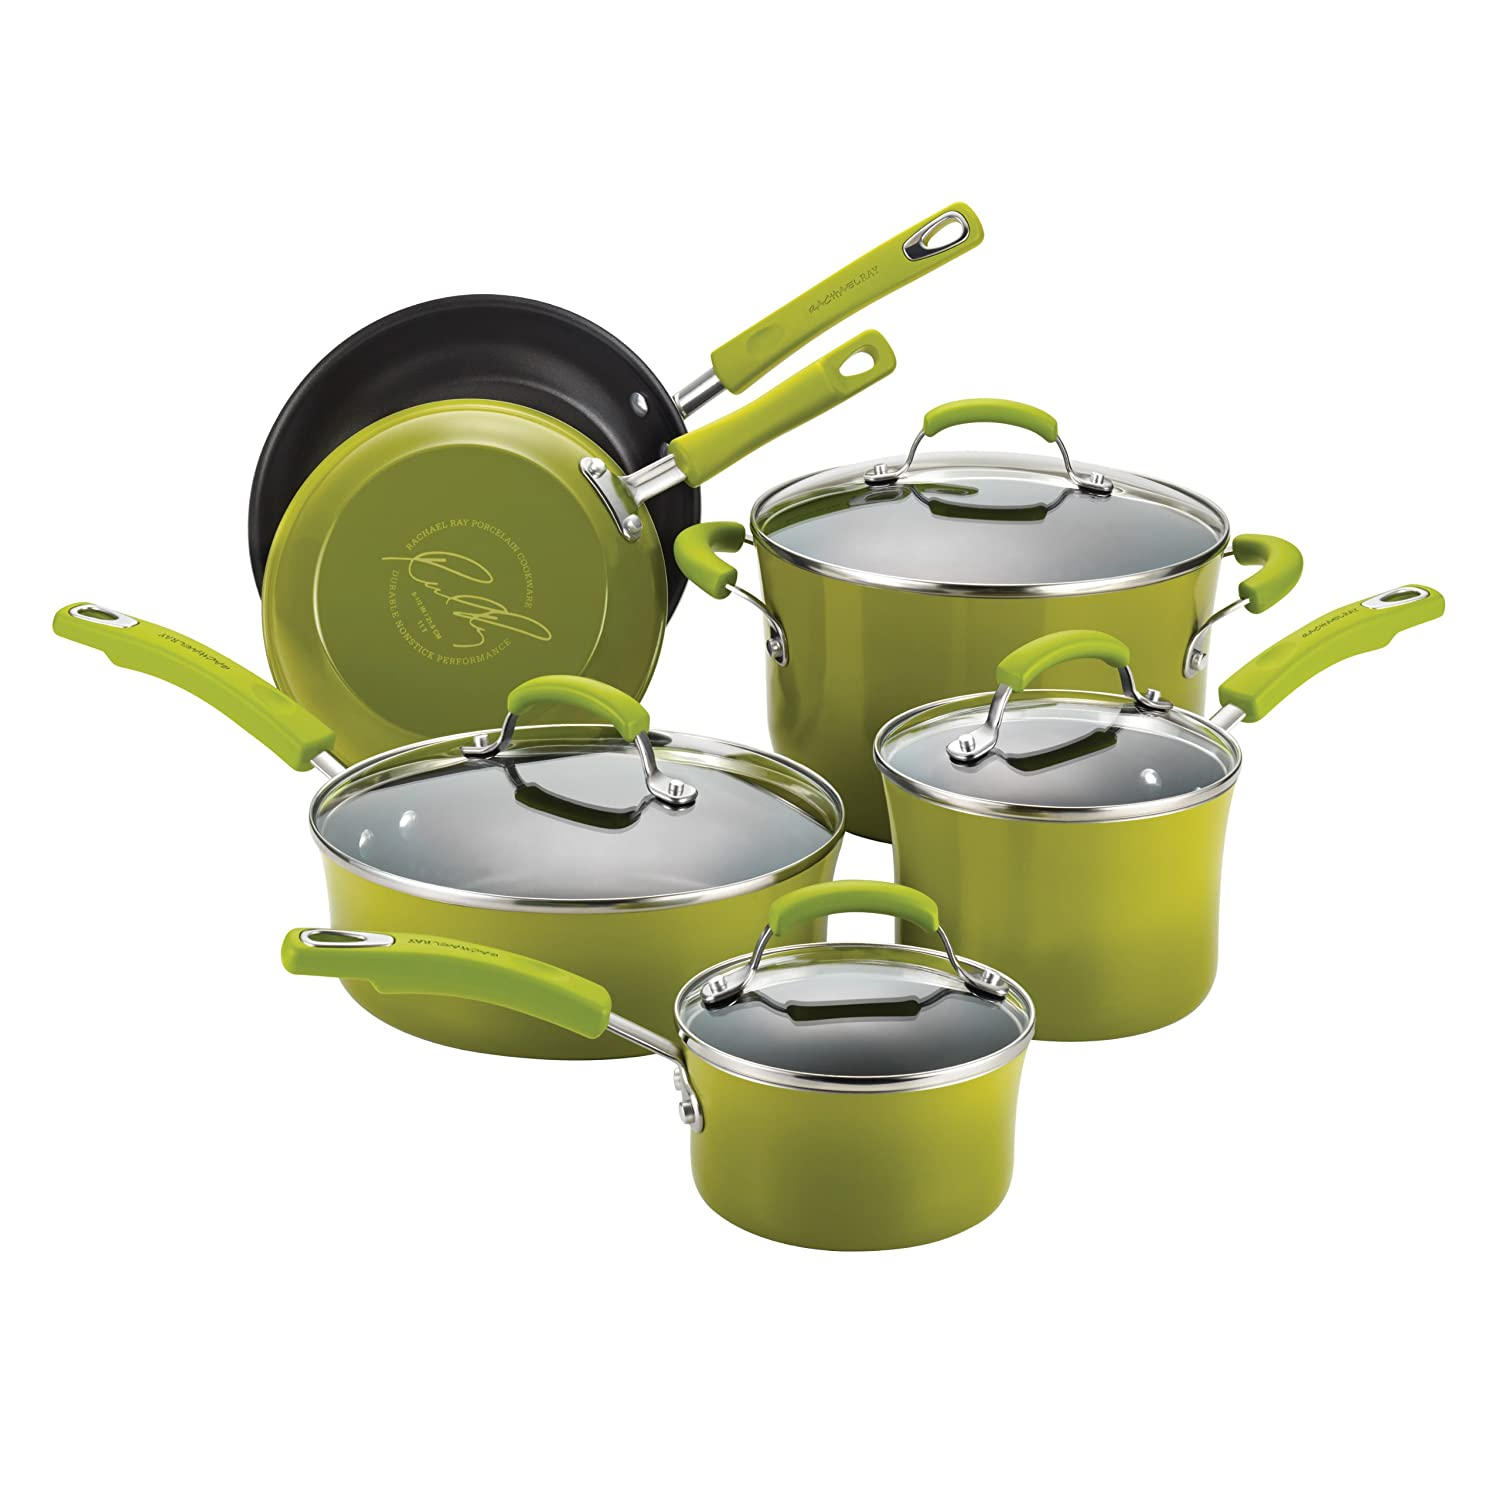 lime green kitchen accessories for decor